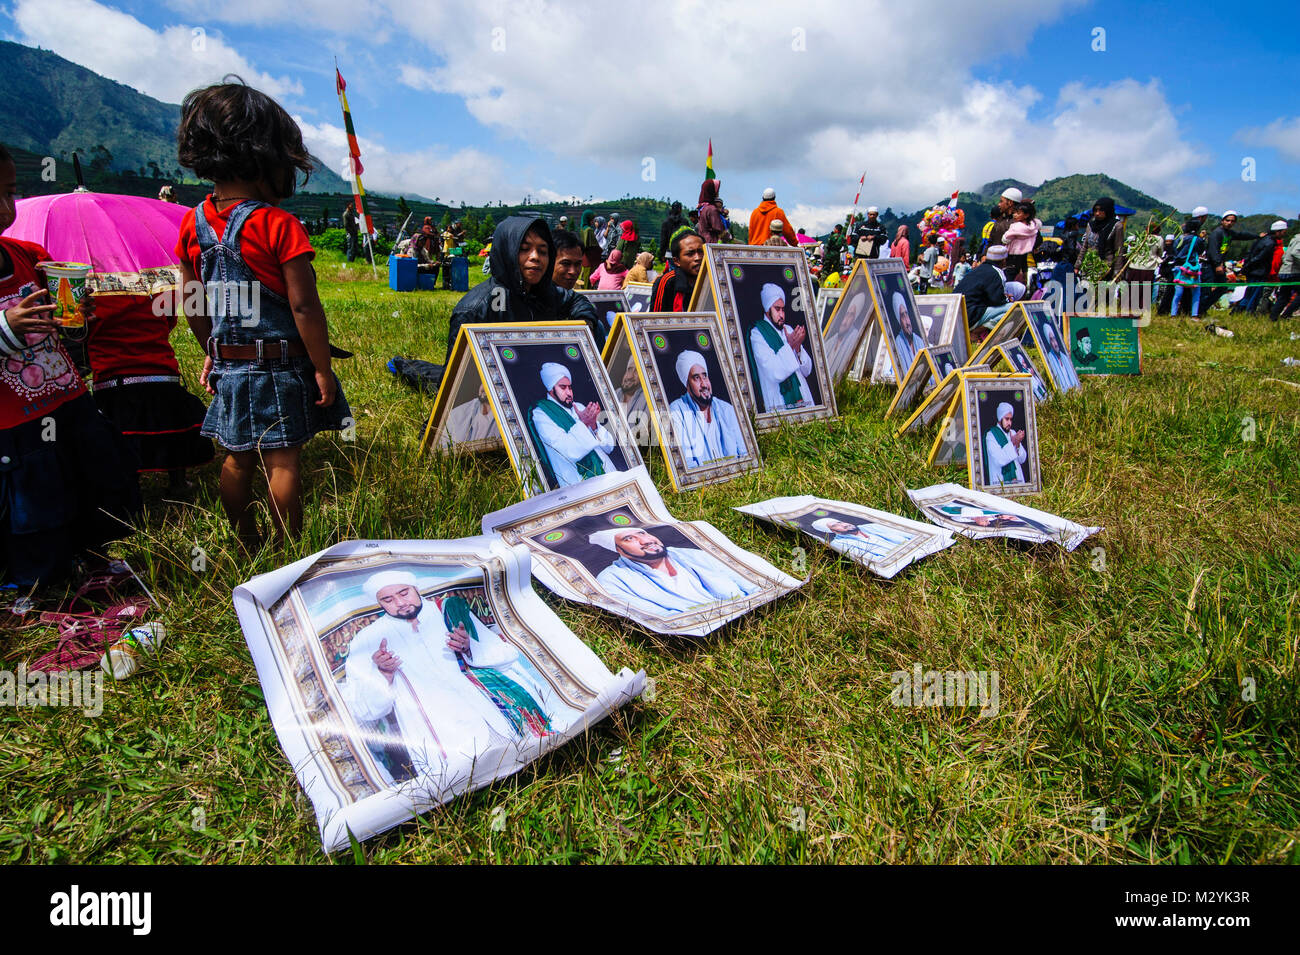 Muslim leader photos for sale at a Muslim festival at the Arjuna Hindu Dieng temple complex , Dieng Plateau, Java, - Stock Image